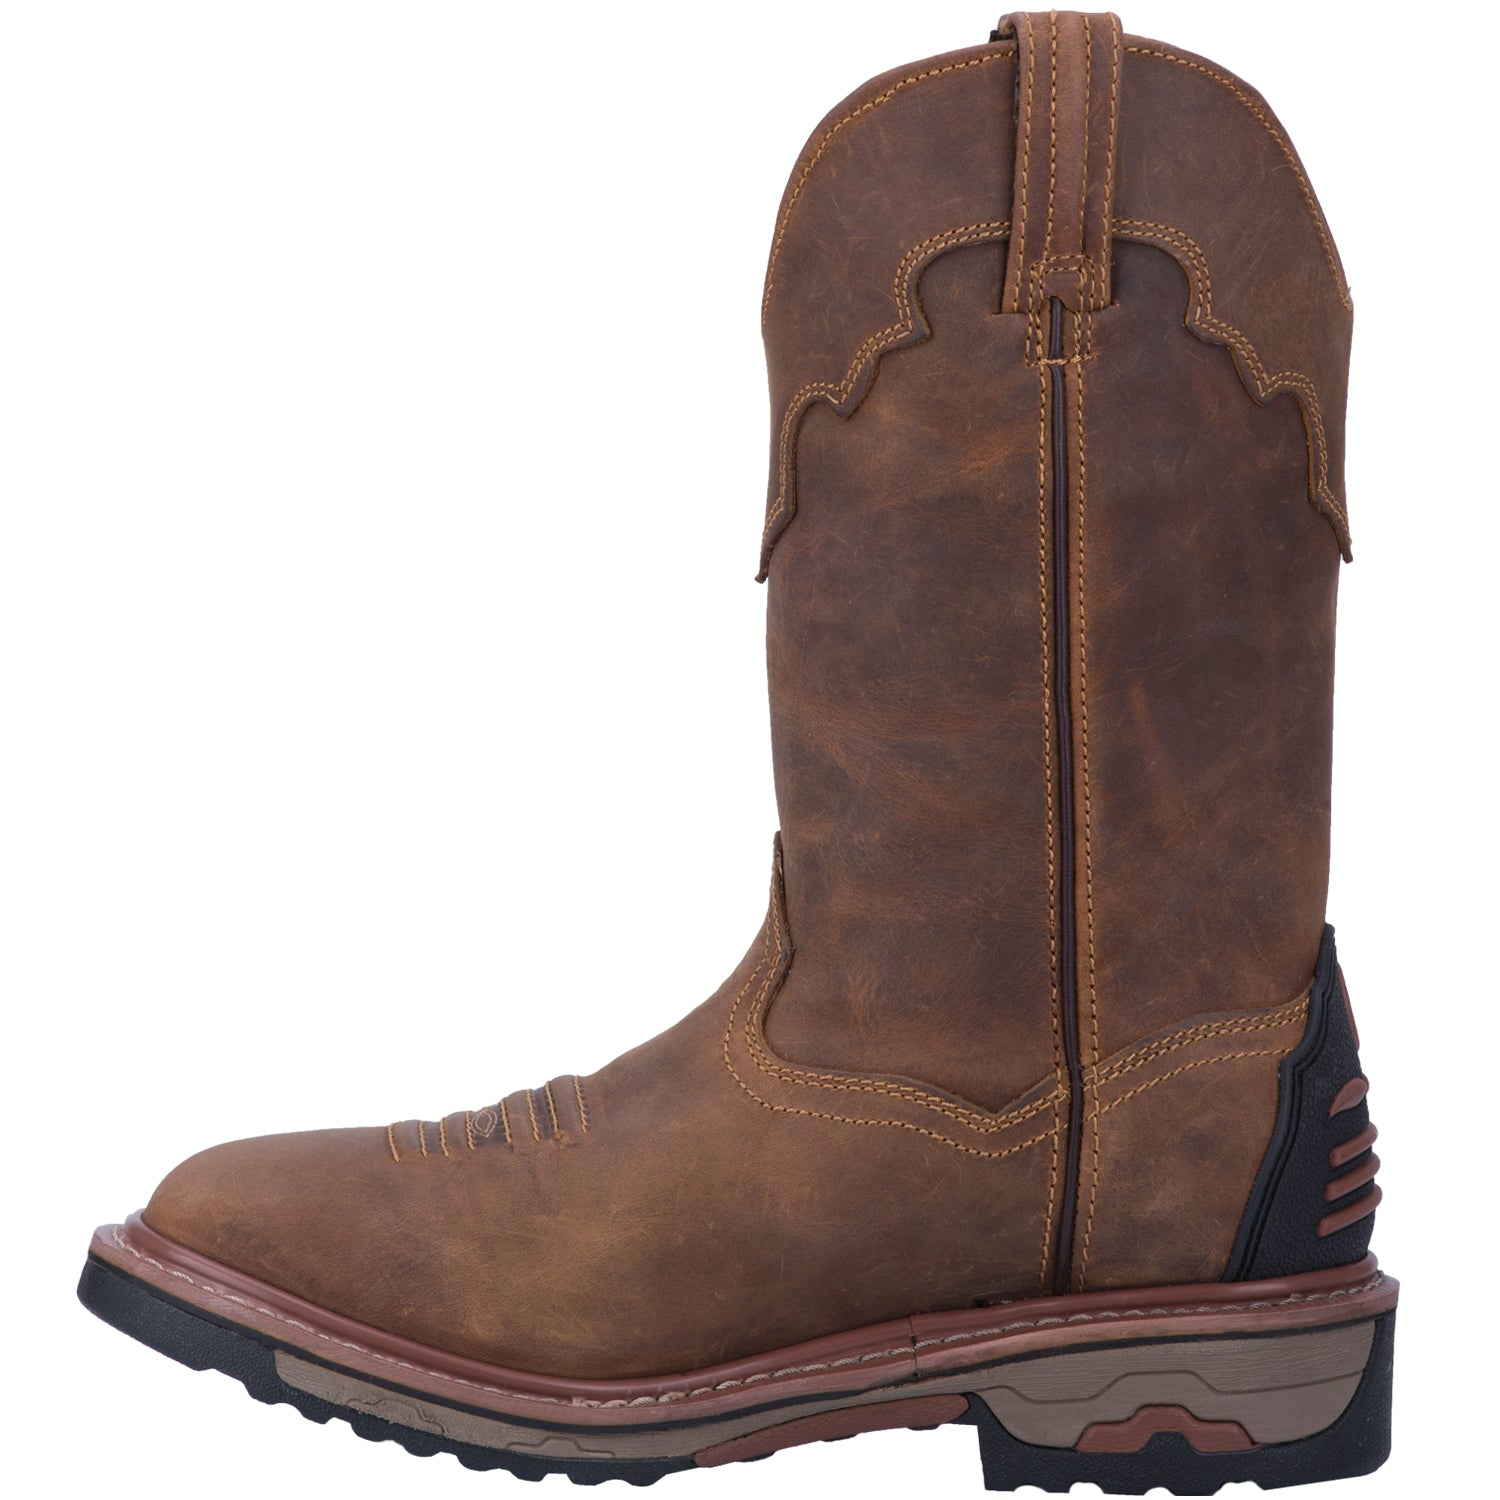 BLAYDE WATERPROOF LEATHER BOOT - Dan Post Boots